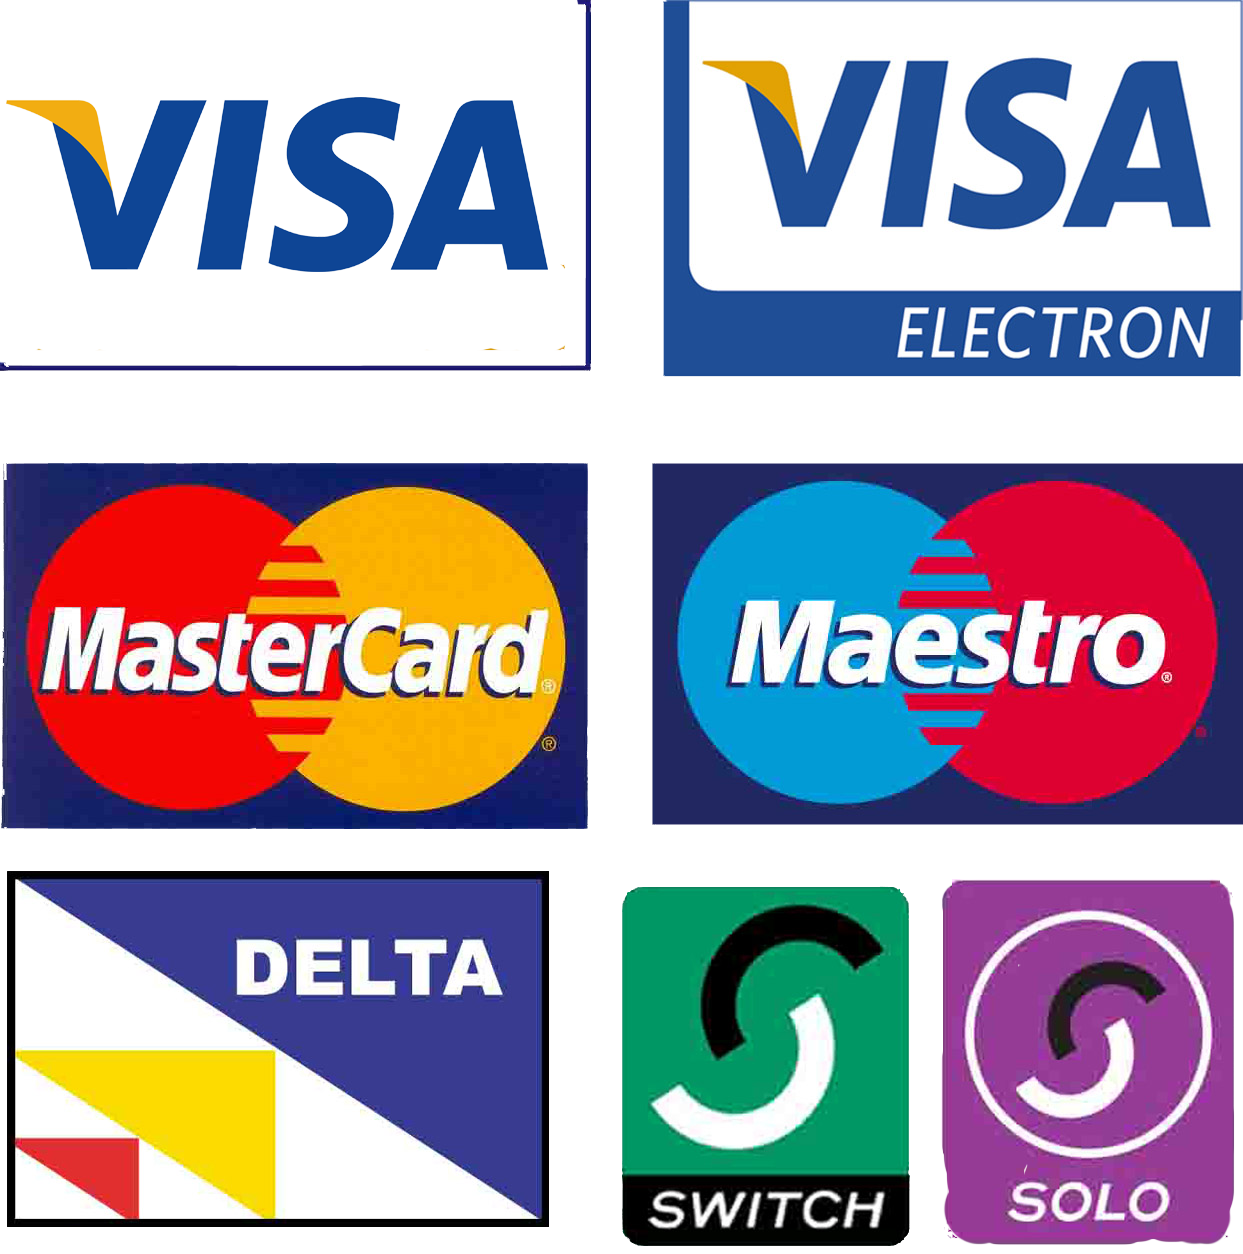 can i use visa electron online